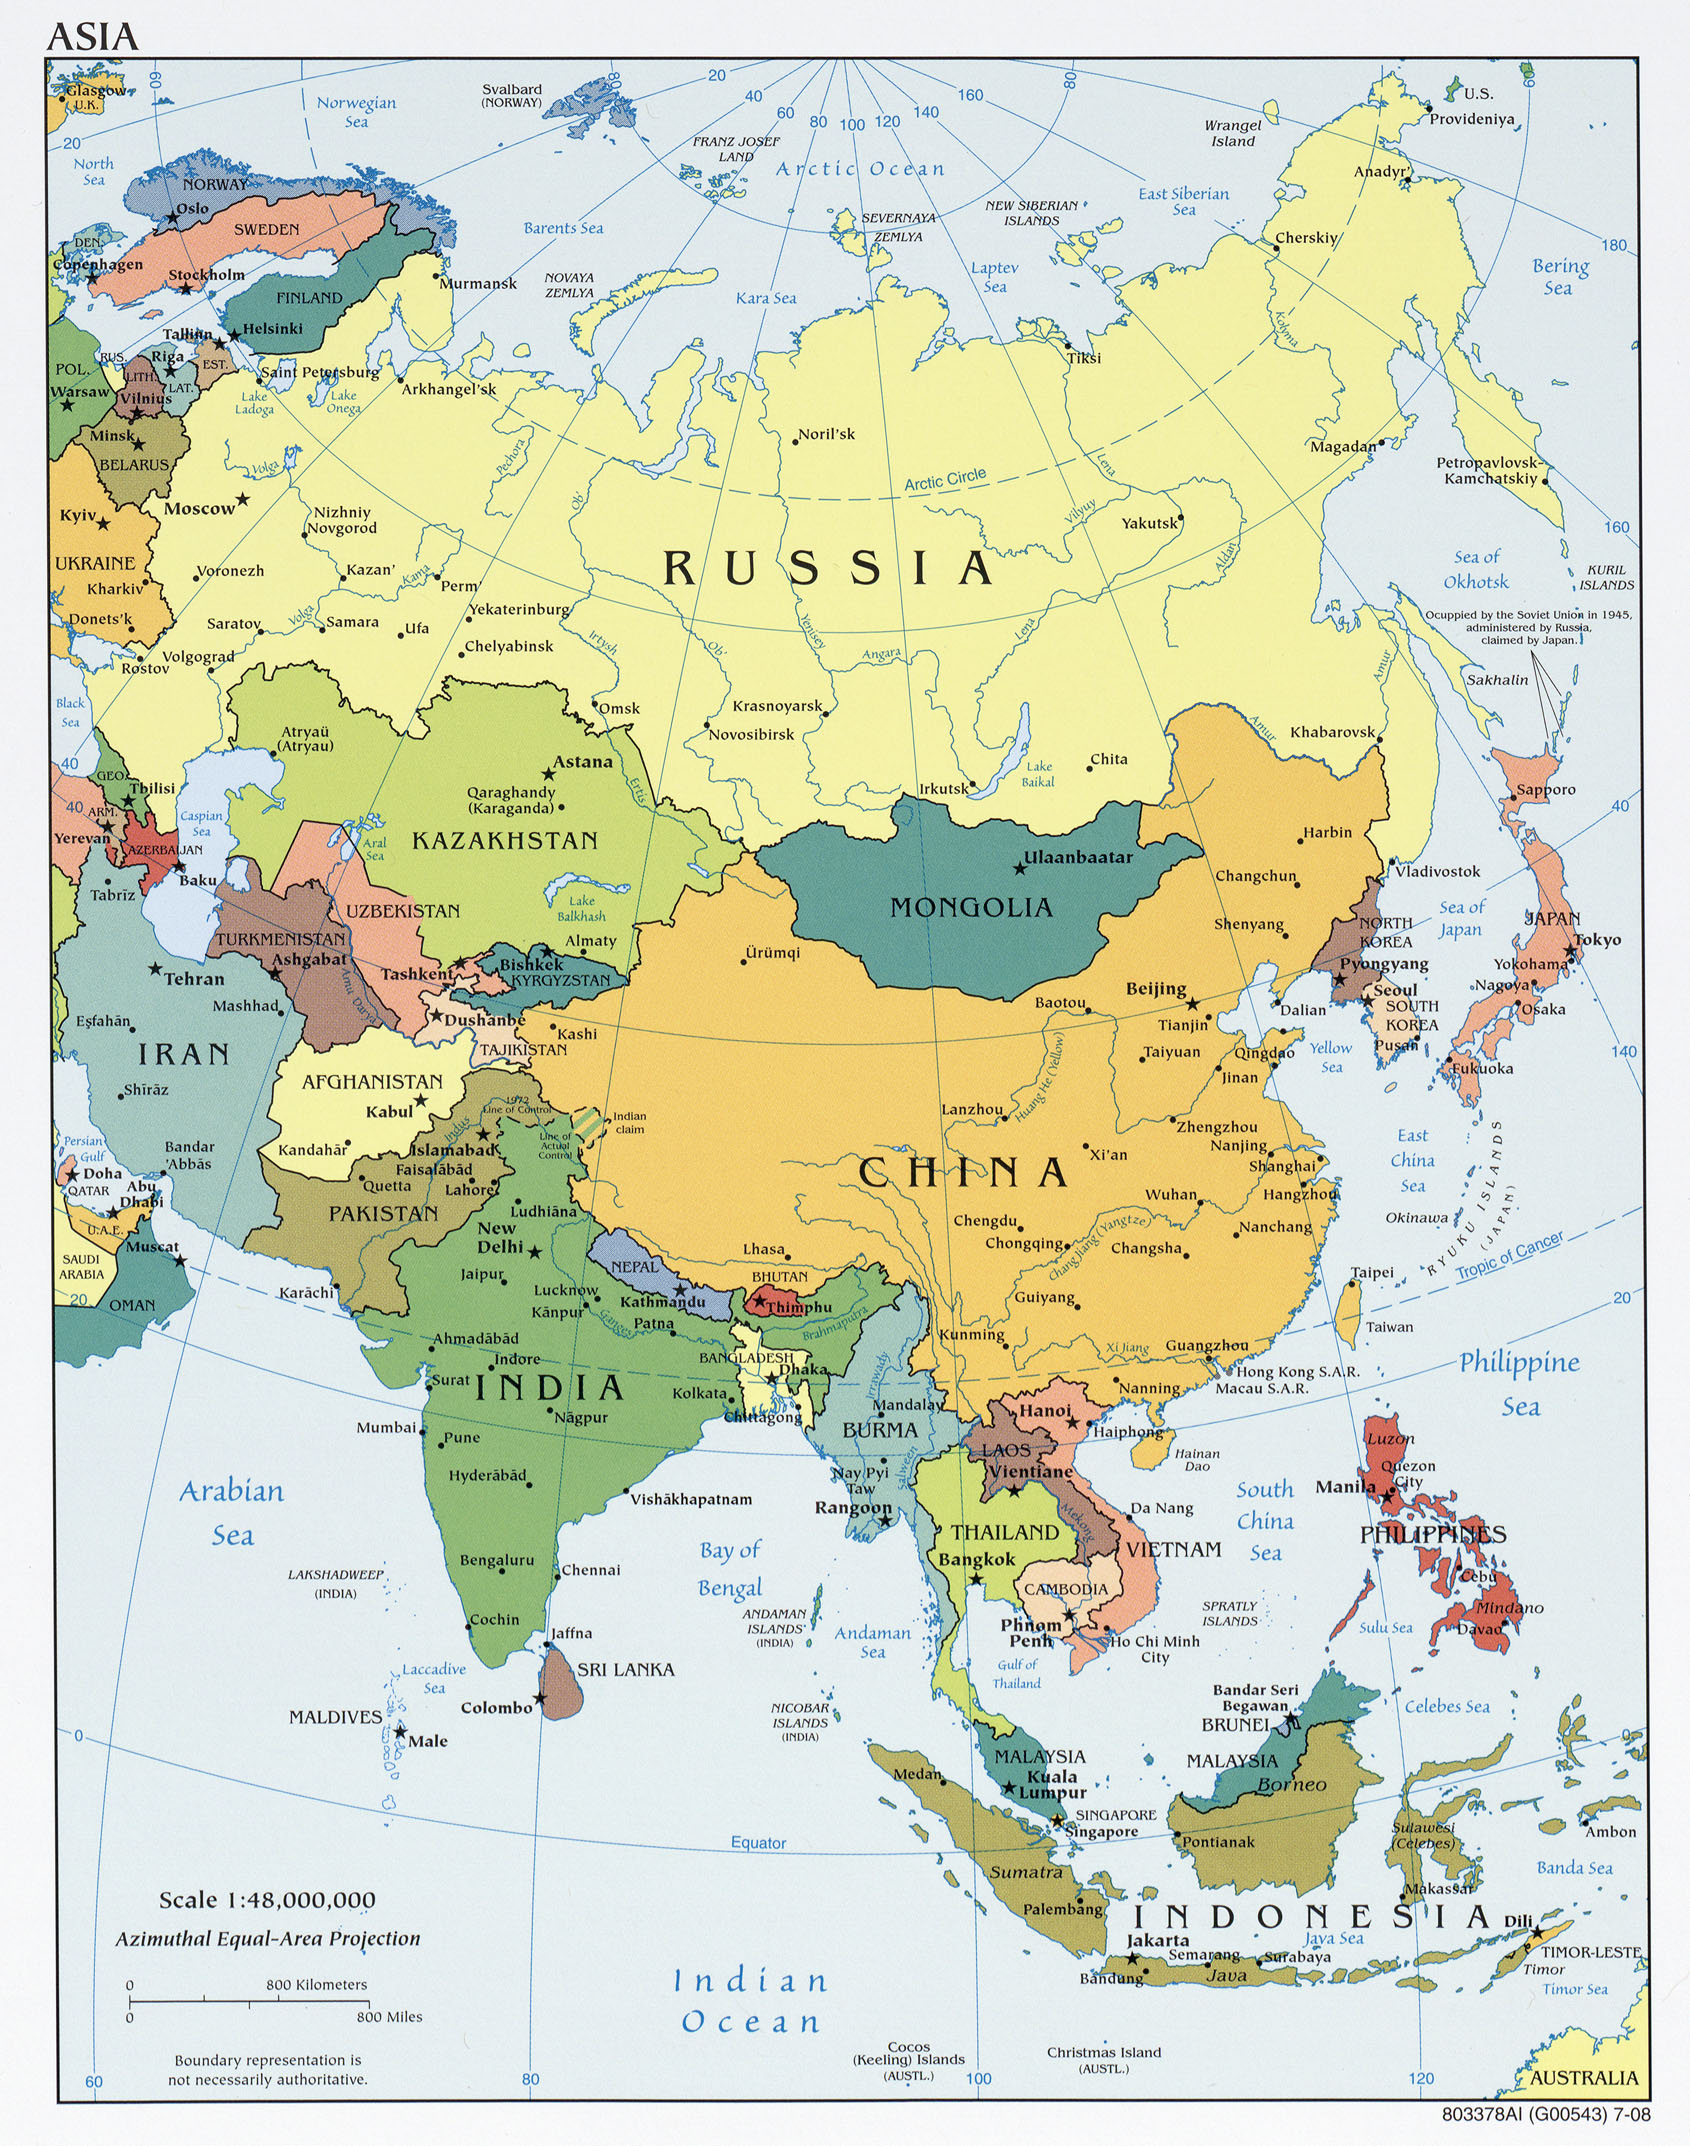 Asia Political Map 2008 Full size